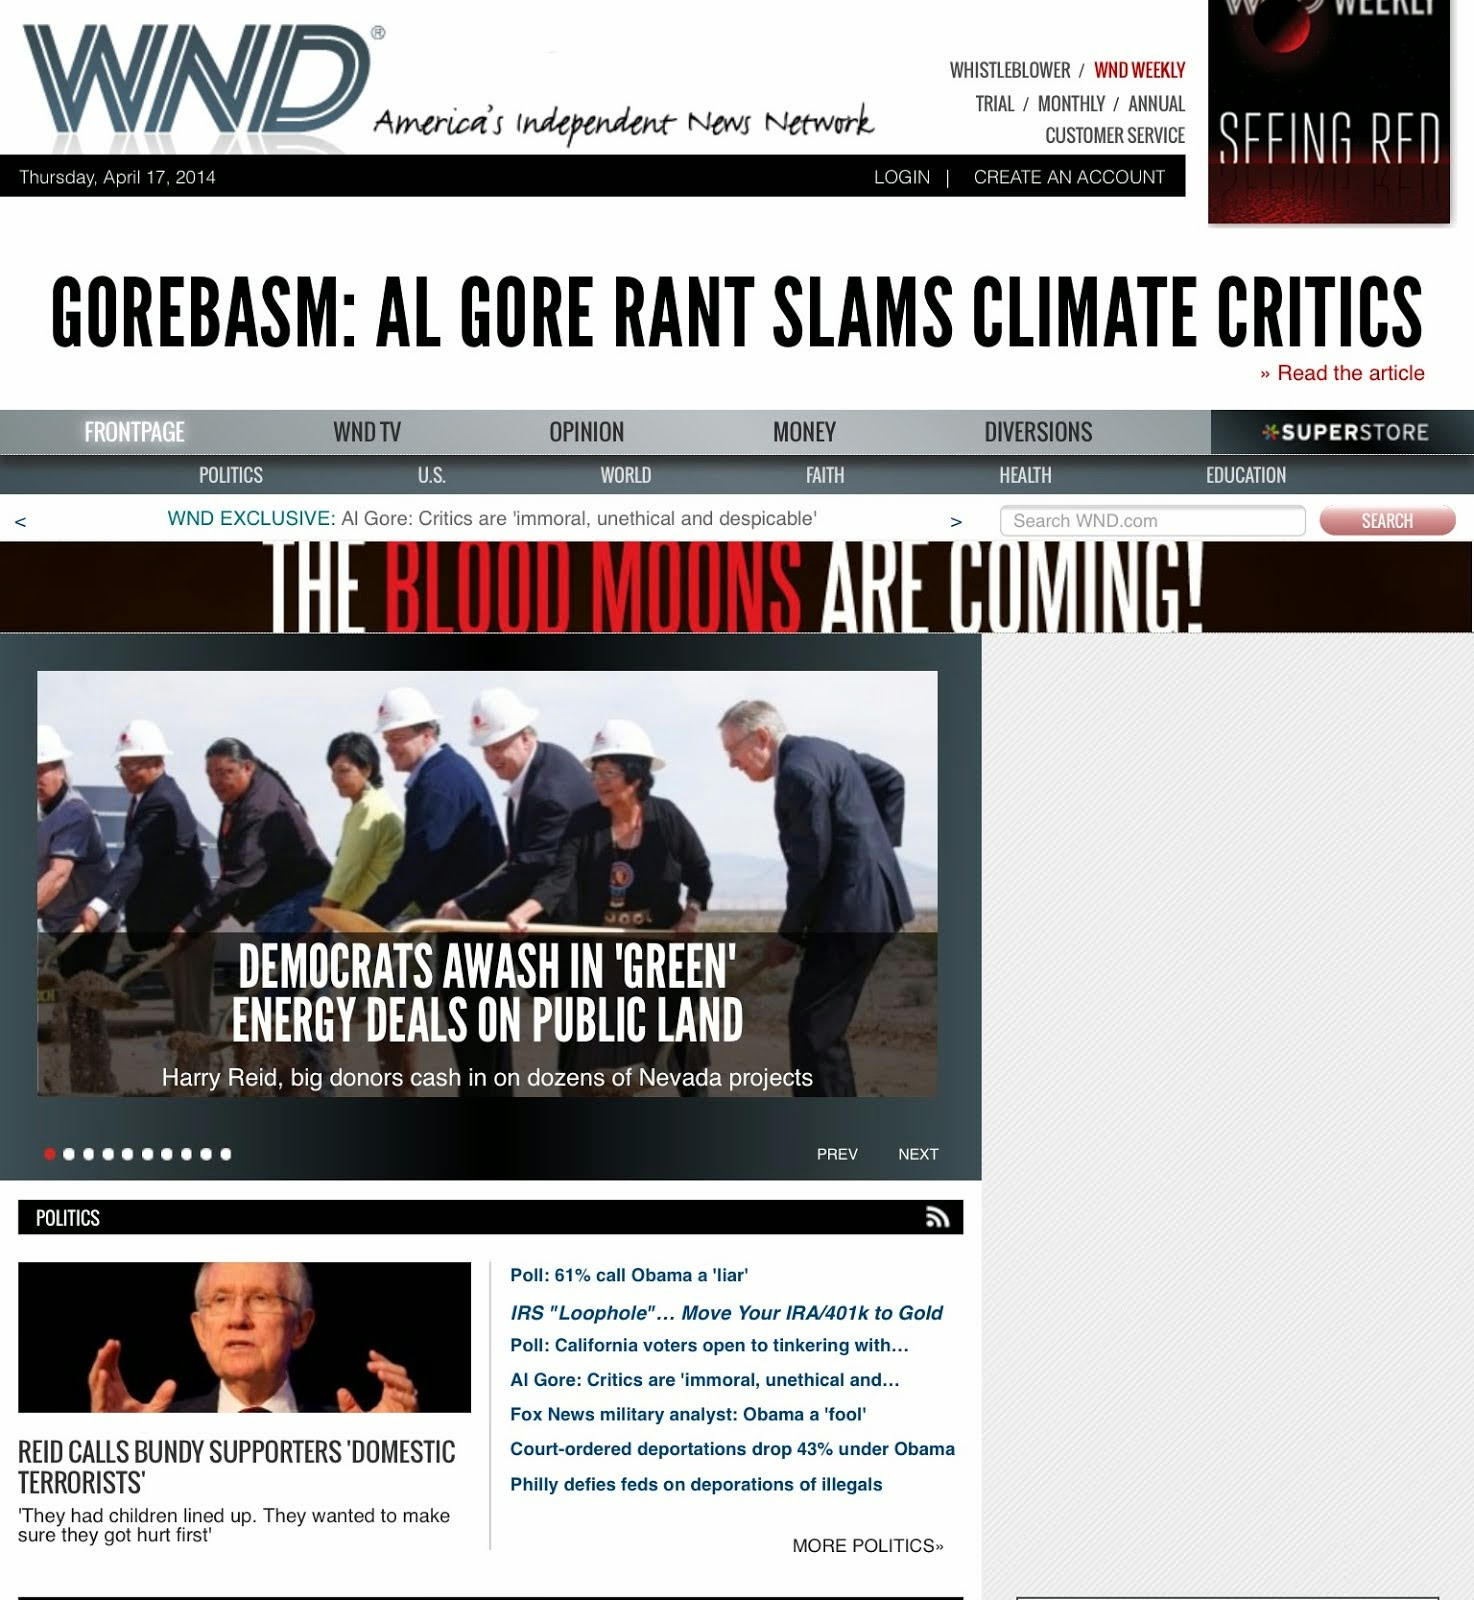 April 18, 2014: @ WND EXCLUSIVE / by  Jerome Corsi